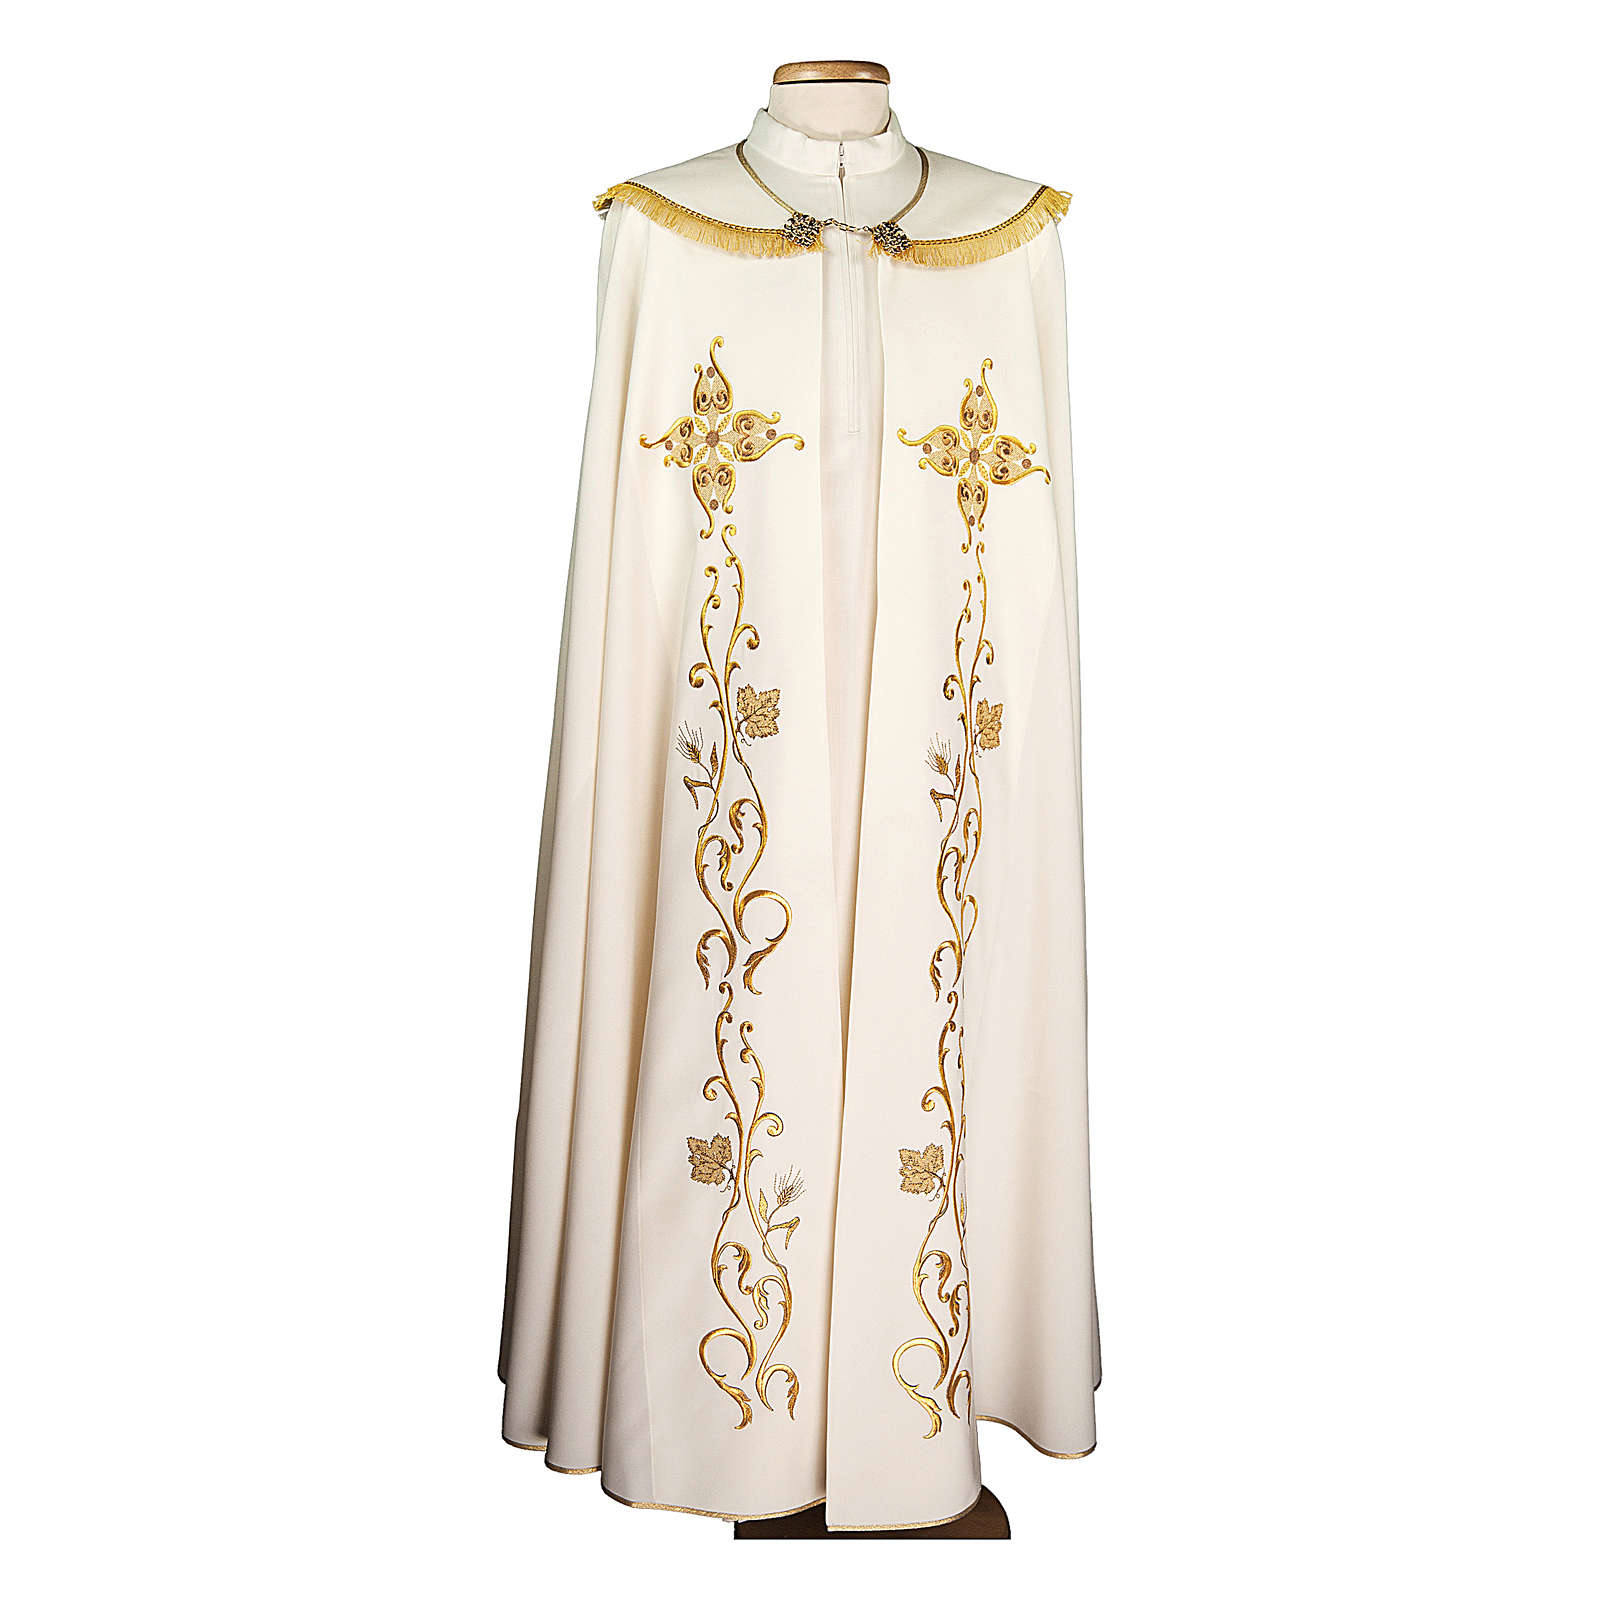 Liturgical cope 100% polyester with cross and grapes embroidery 4